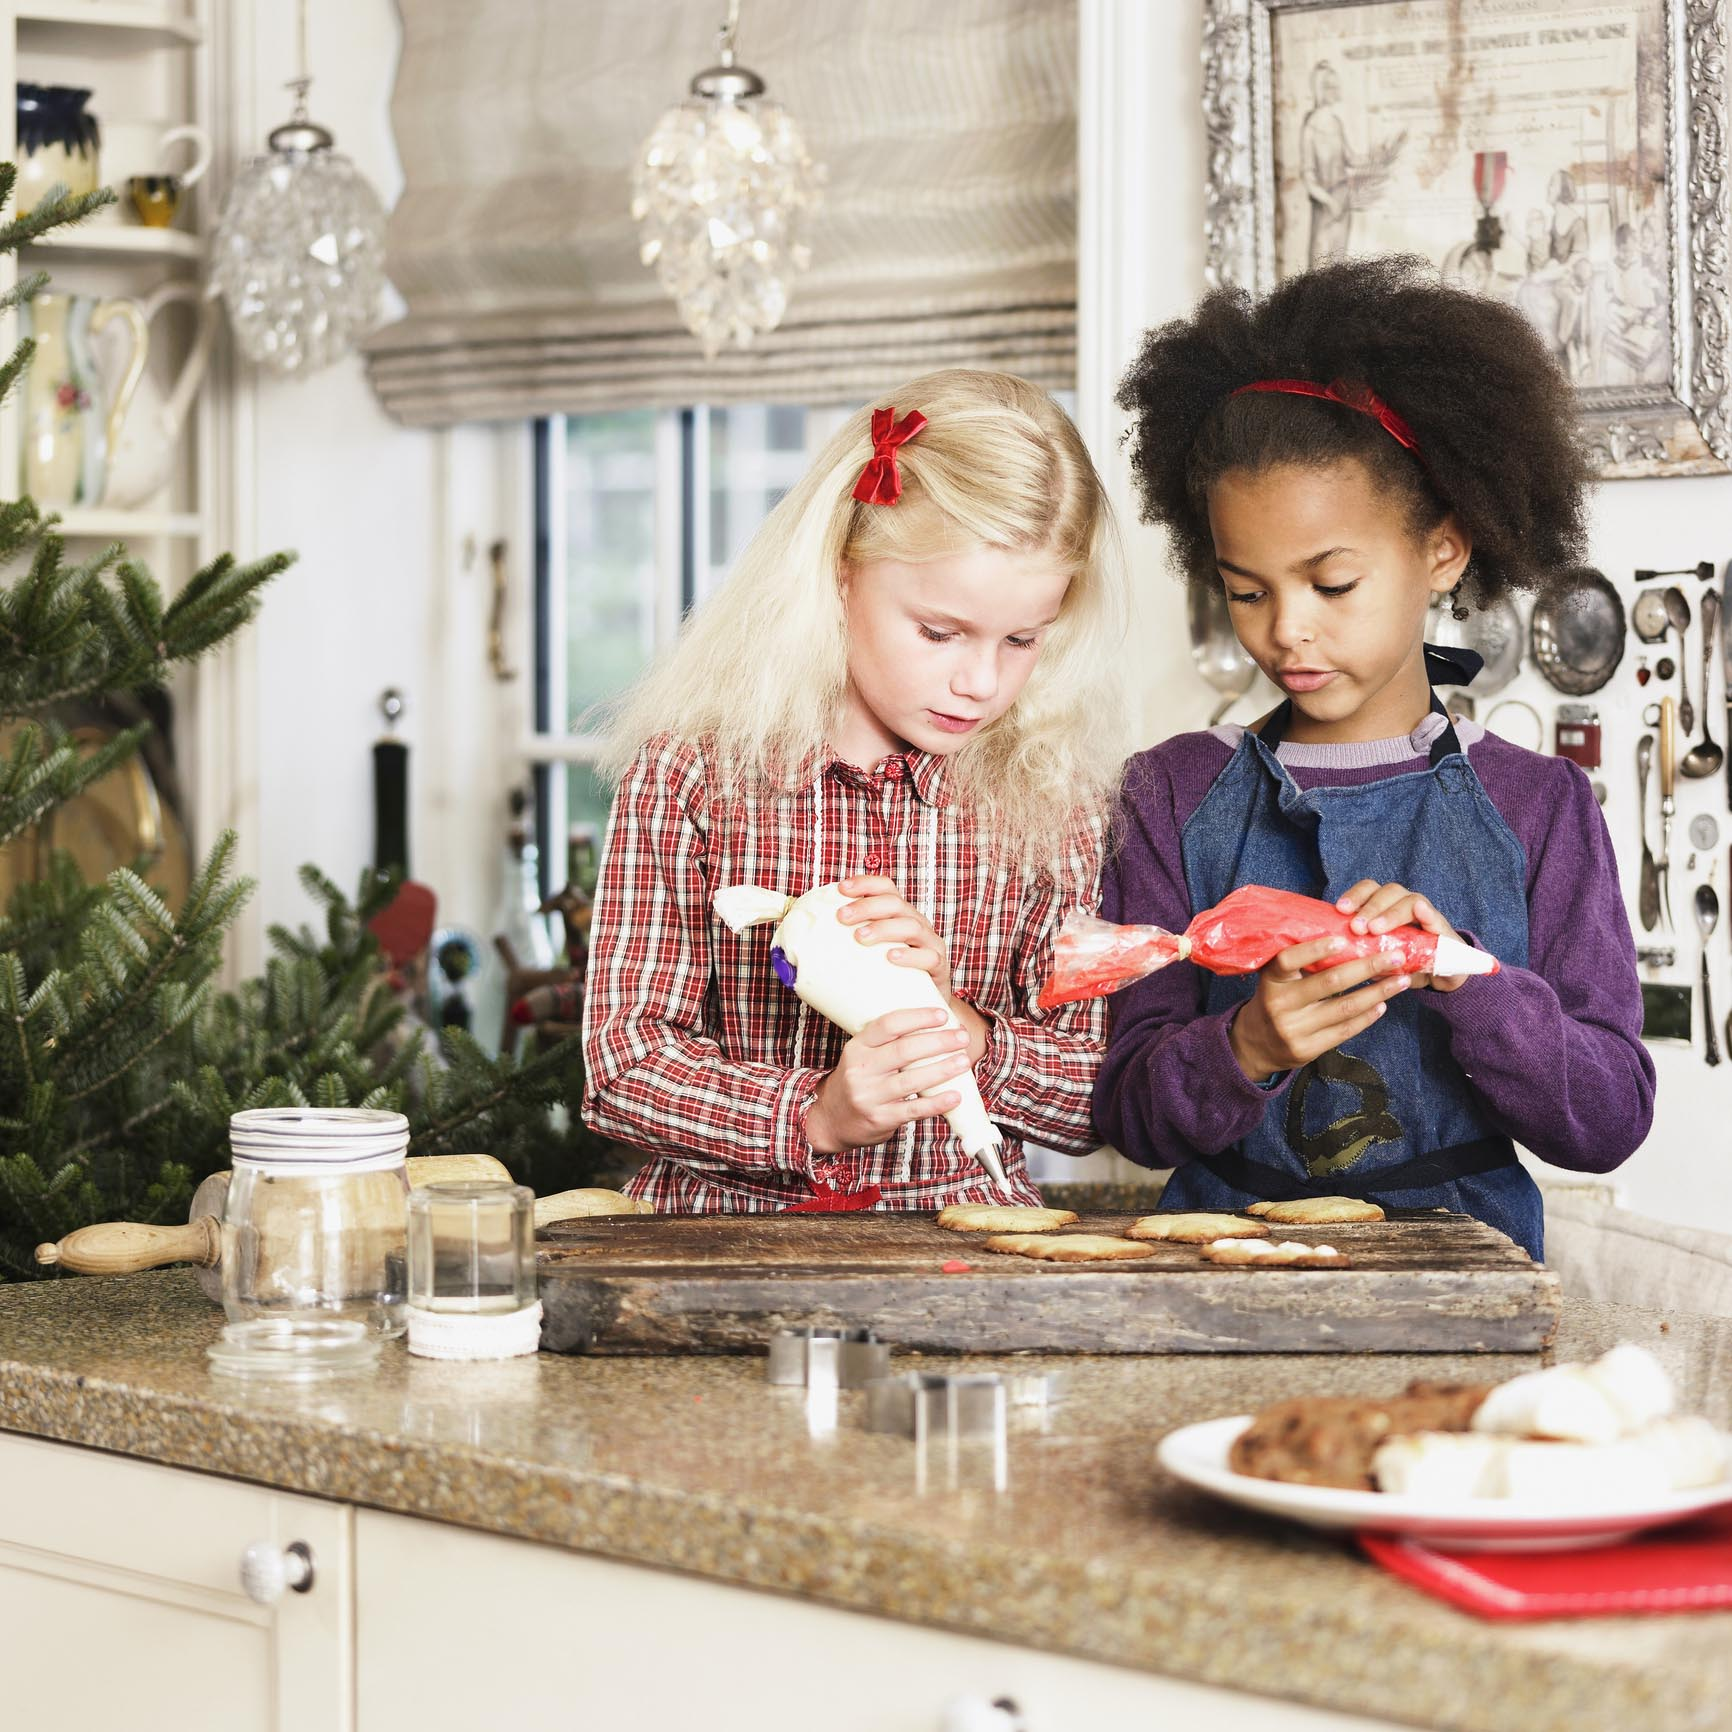 Cooking With Kids At Christmas Top 10 Tips Olive Magazine